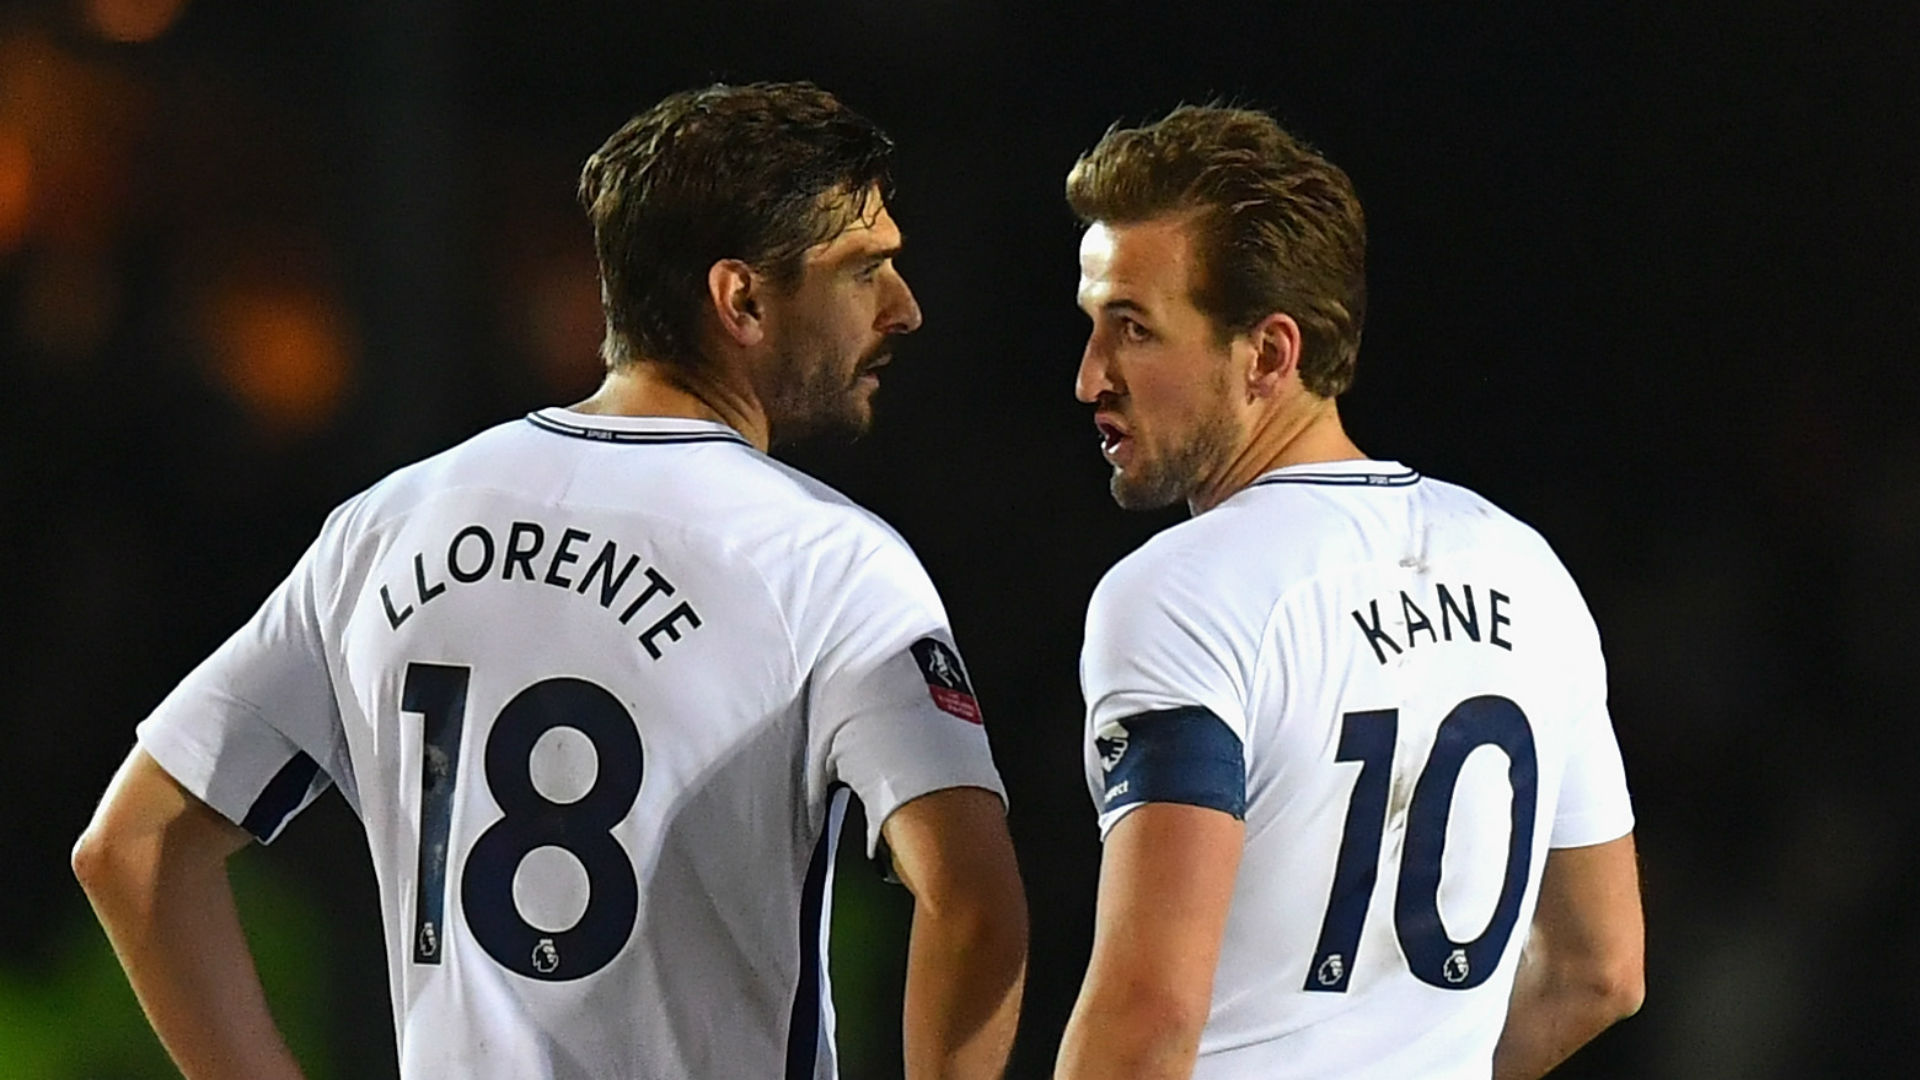 Nine-man Tottenham squanders chance to clinch top-four Premier League finish